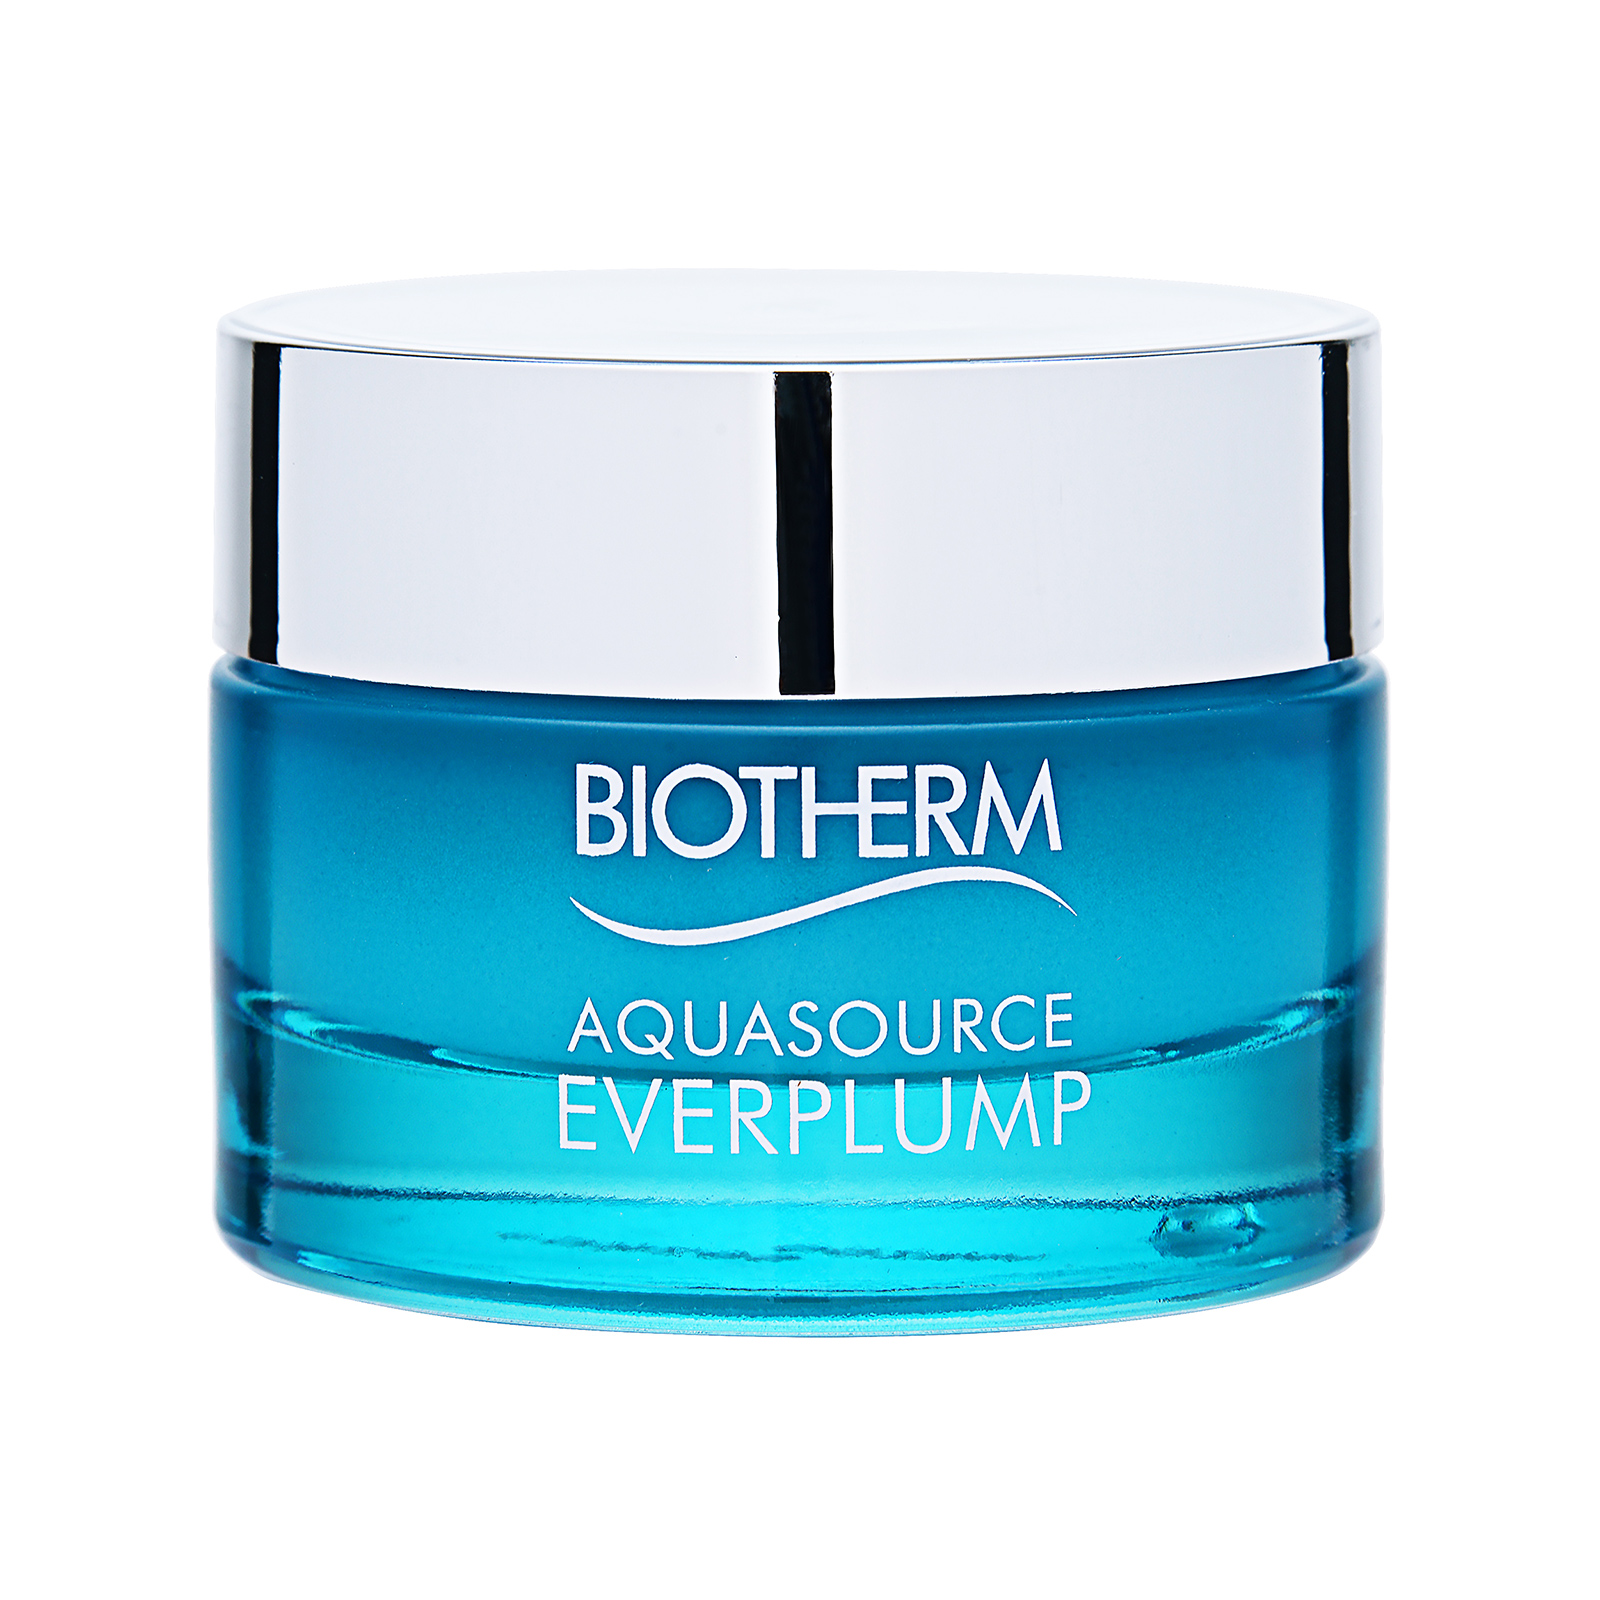 Biotherm Aquasource Everplump Plumping Smoothing Moisturizing Treatment (All Skin Types) 1.69oz, 50ml